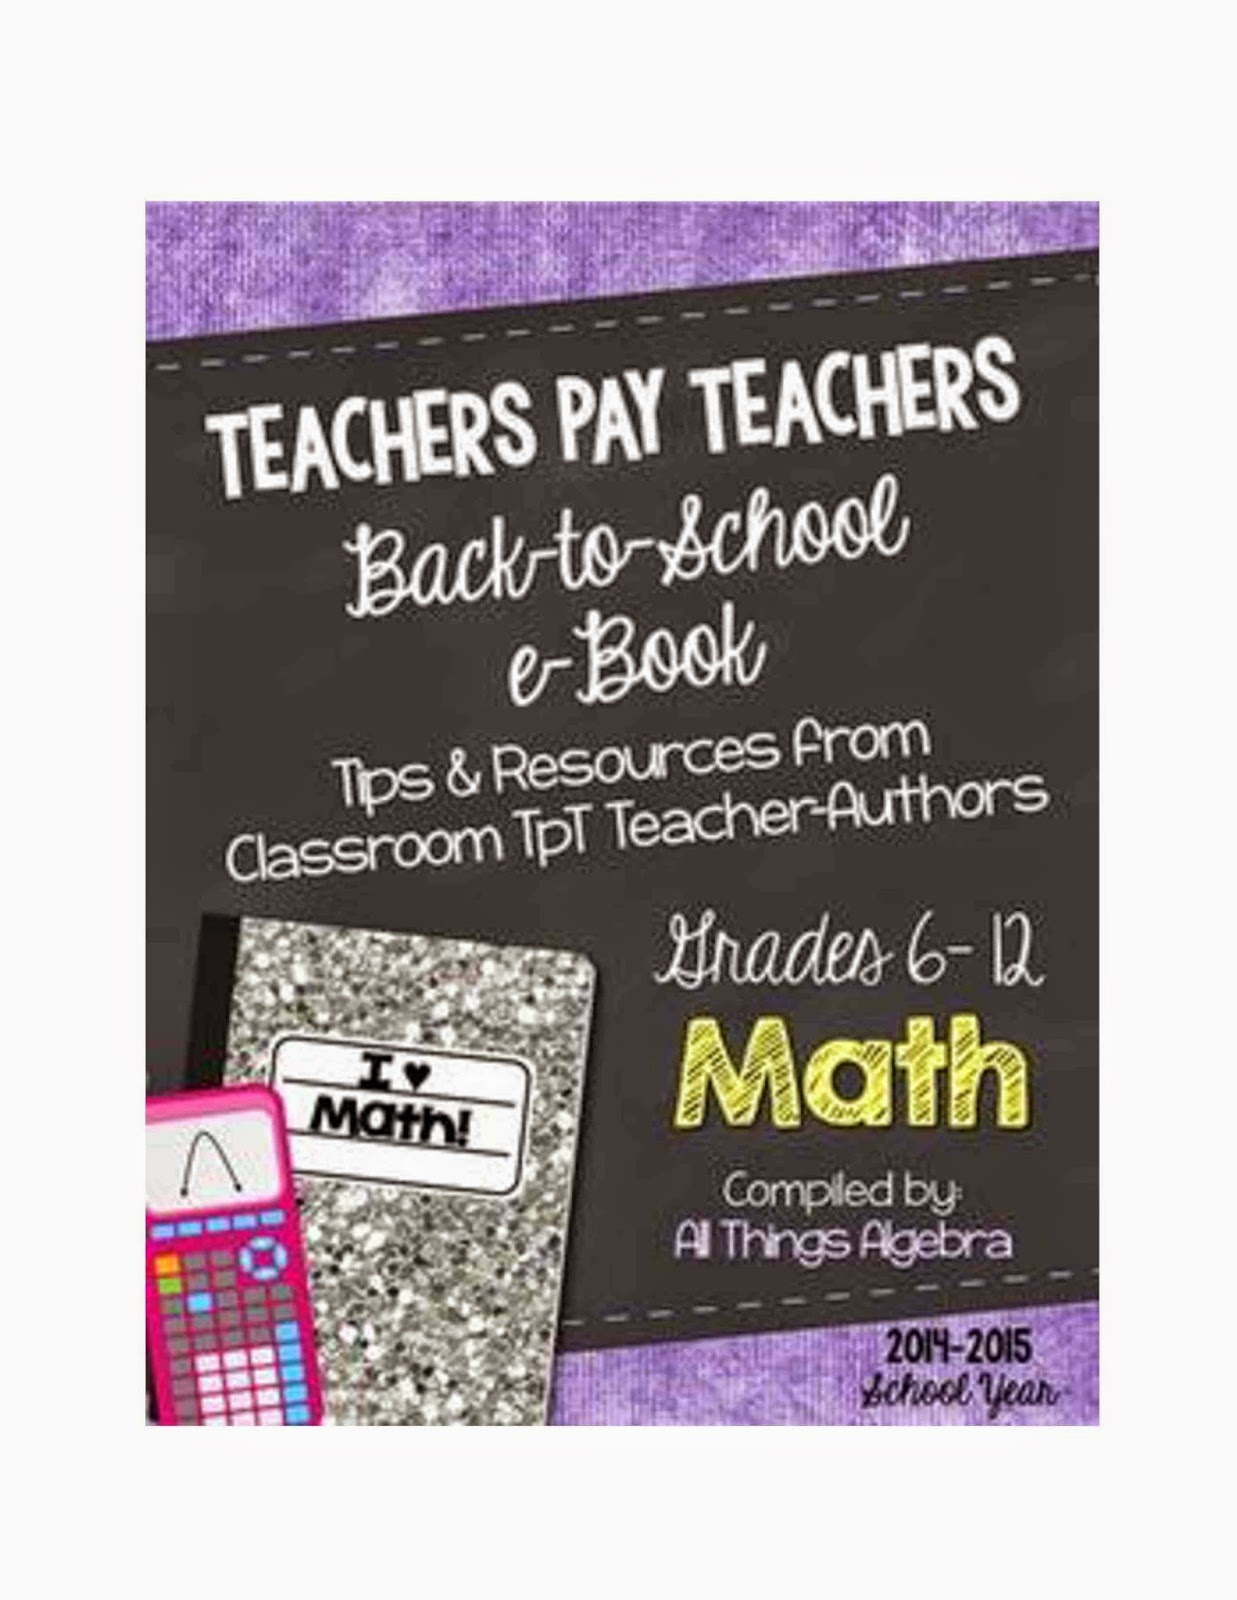 http://www.teacherspayteachers.com/Product/Math-Back-to-School-eBook-for-Grades-6-12-1376805